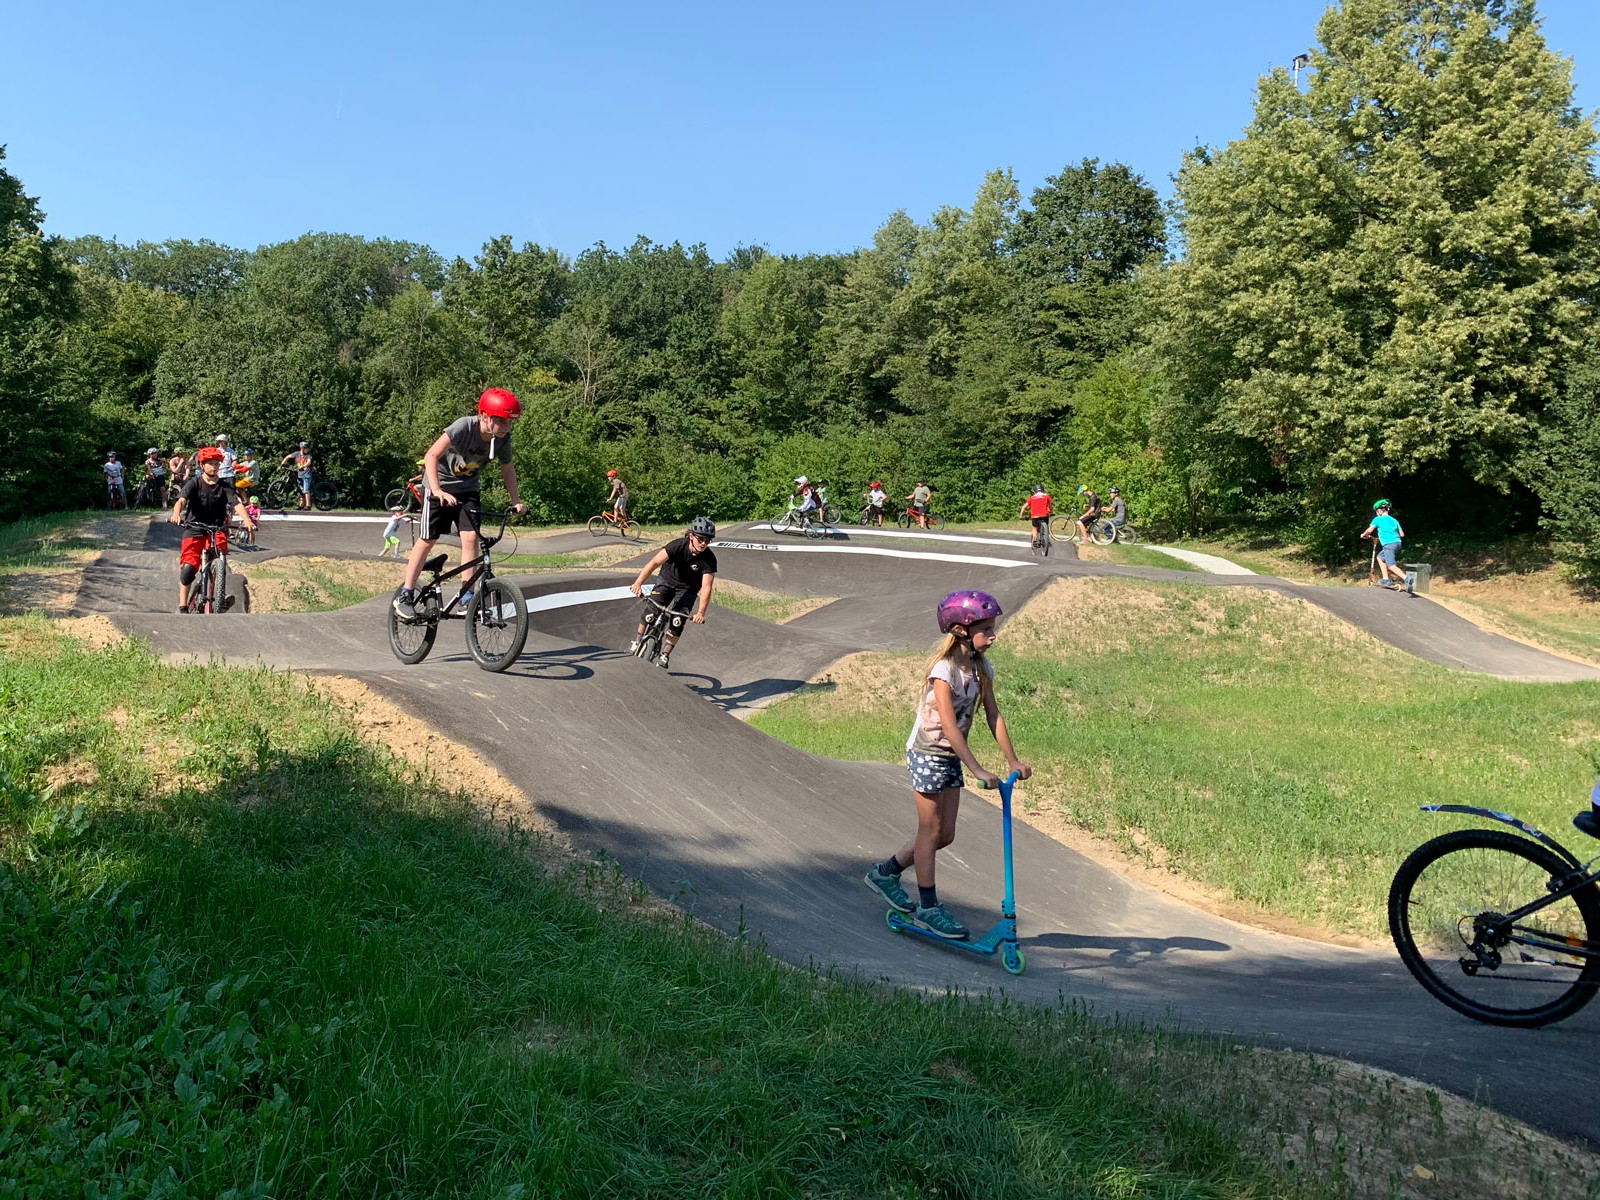 Pumptrack-Anlage